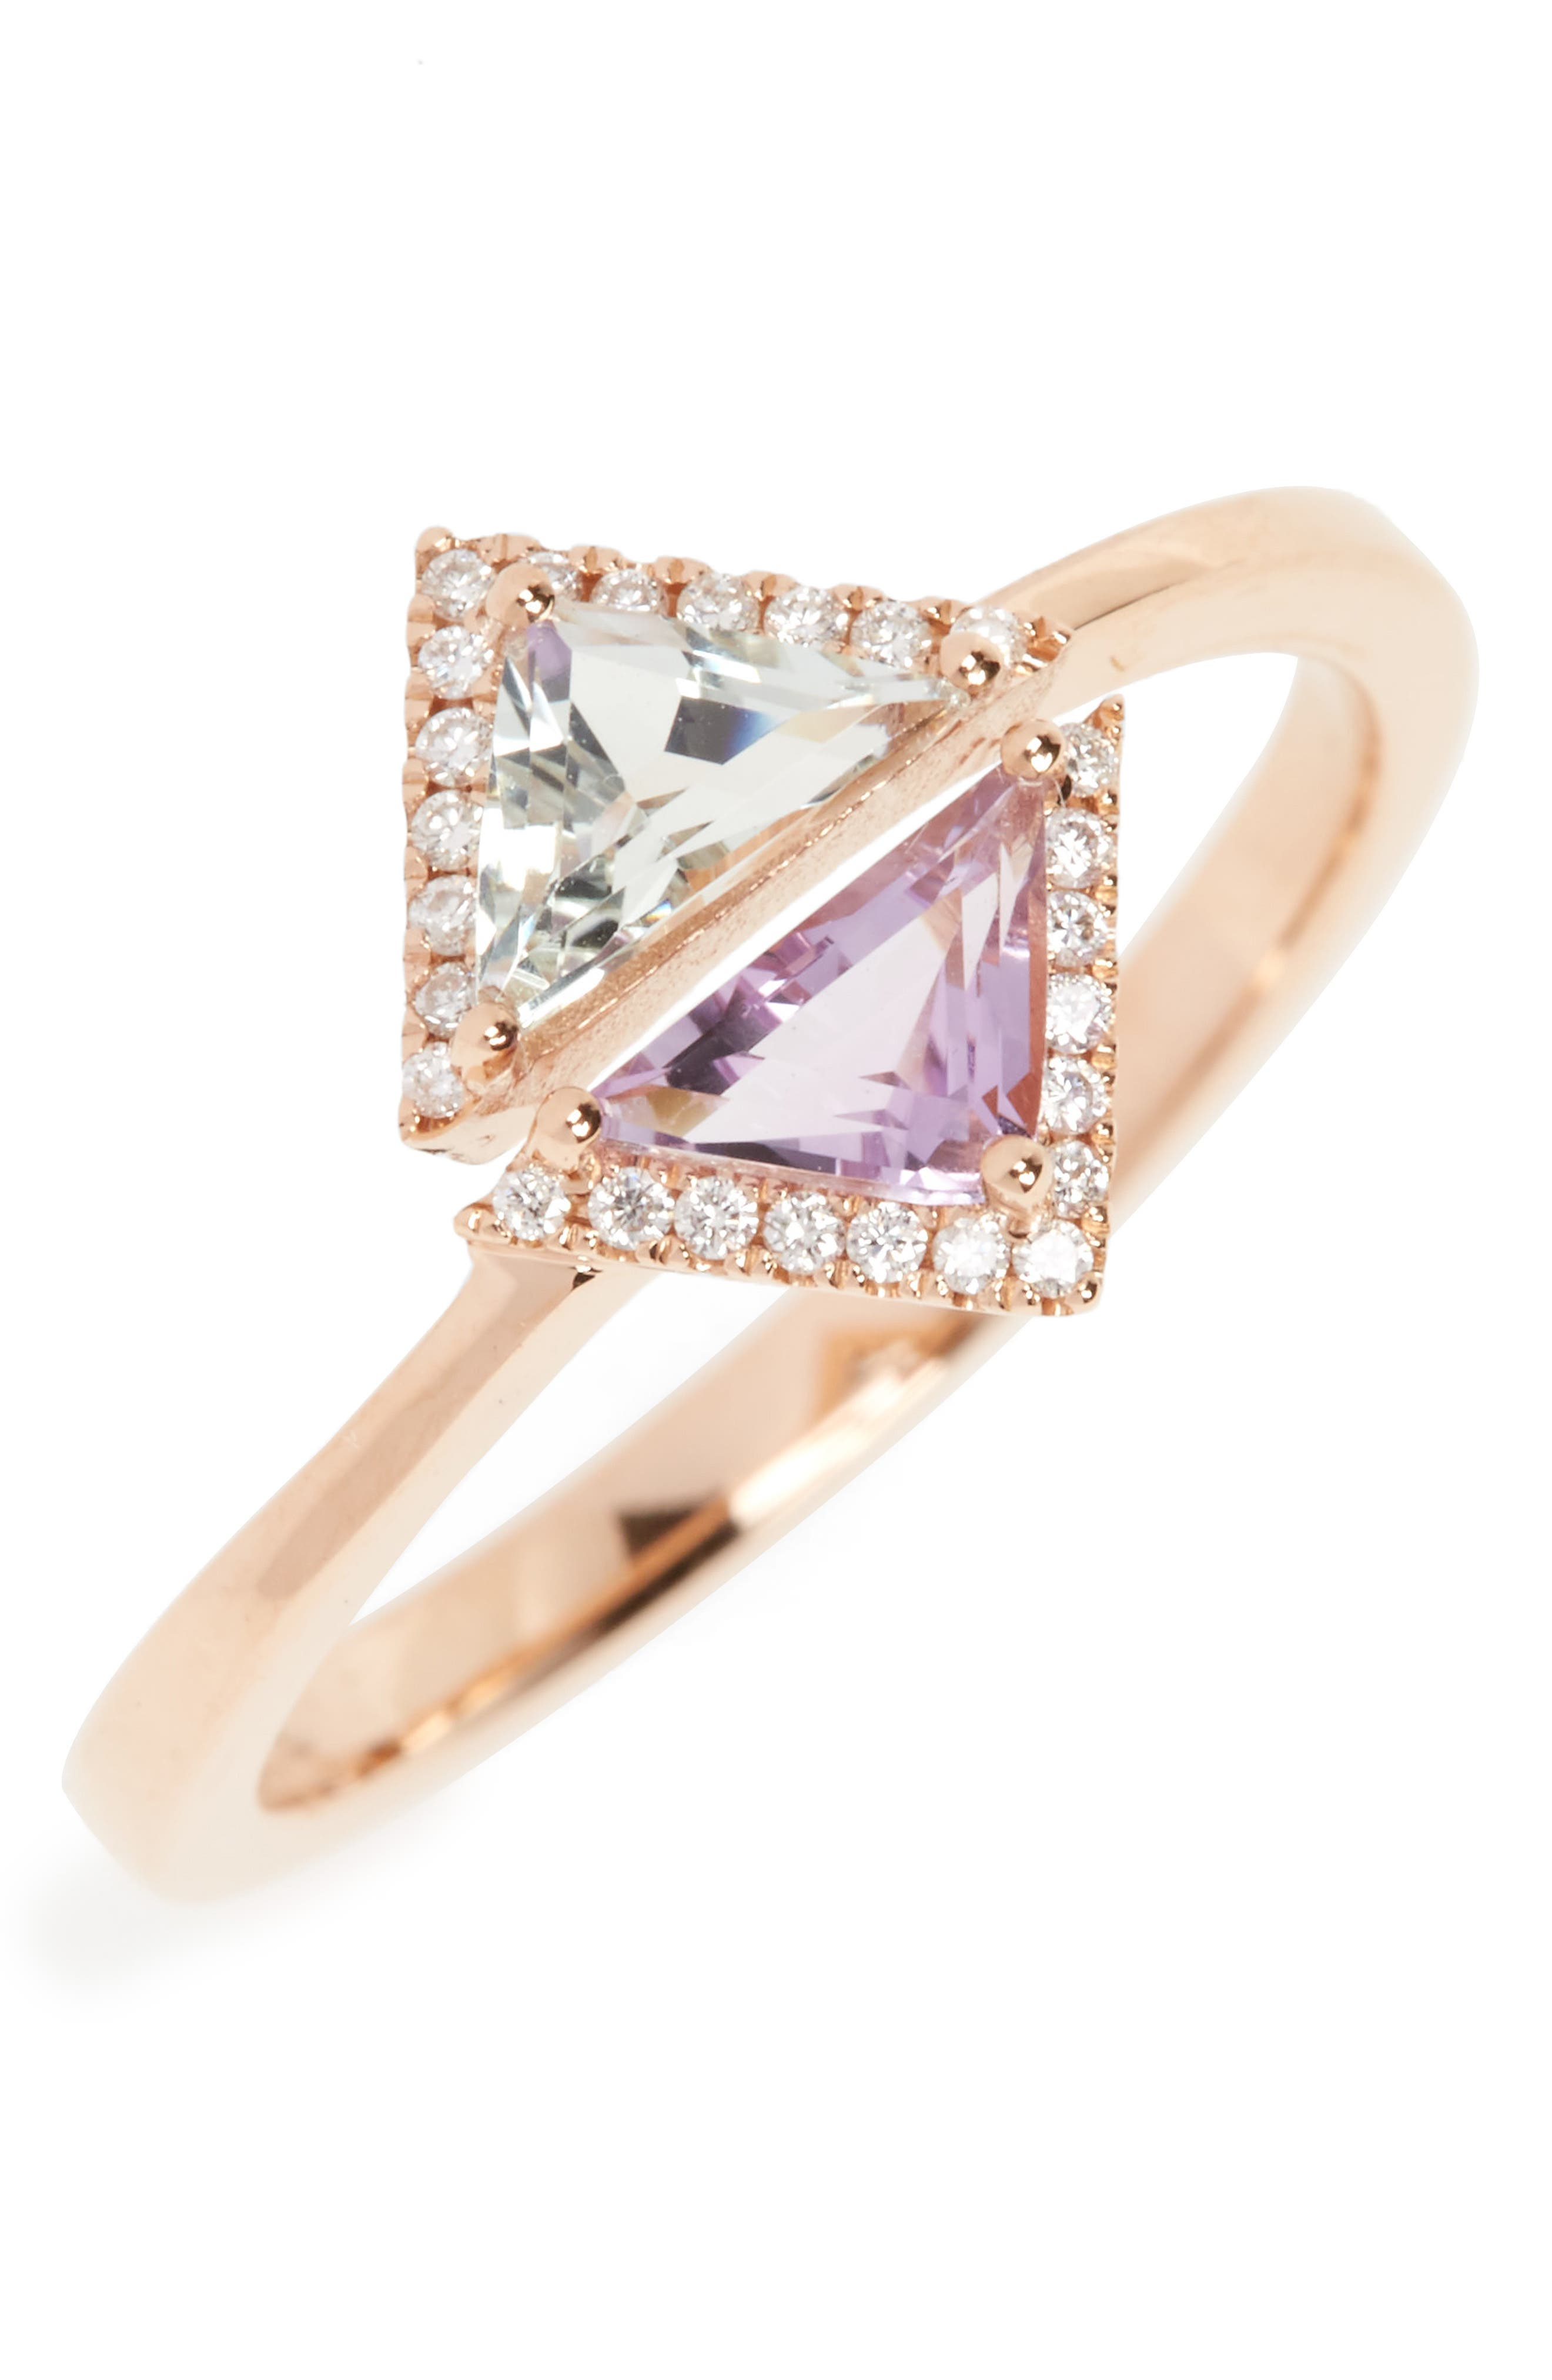 Alternate Image 1 Selected - Bony Levy Iris Double Triangle Diamond & Semiprecious Stone Ring (Nordstrom Exclusive)